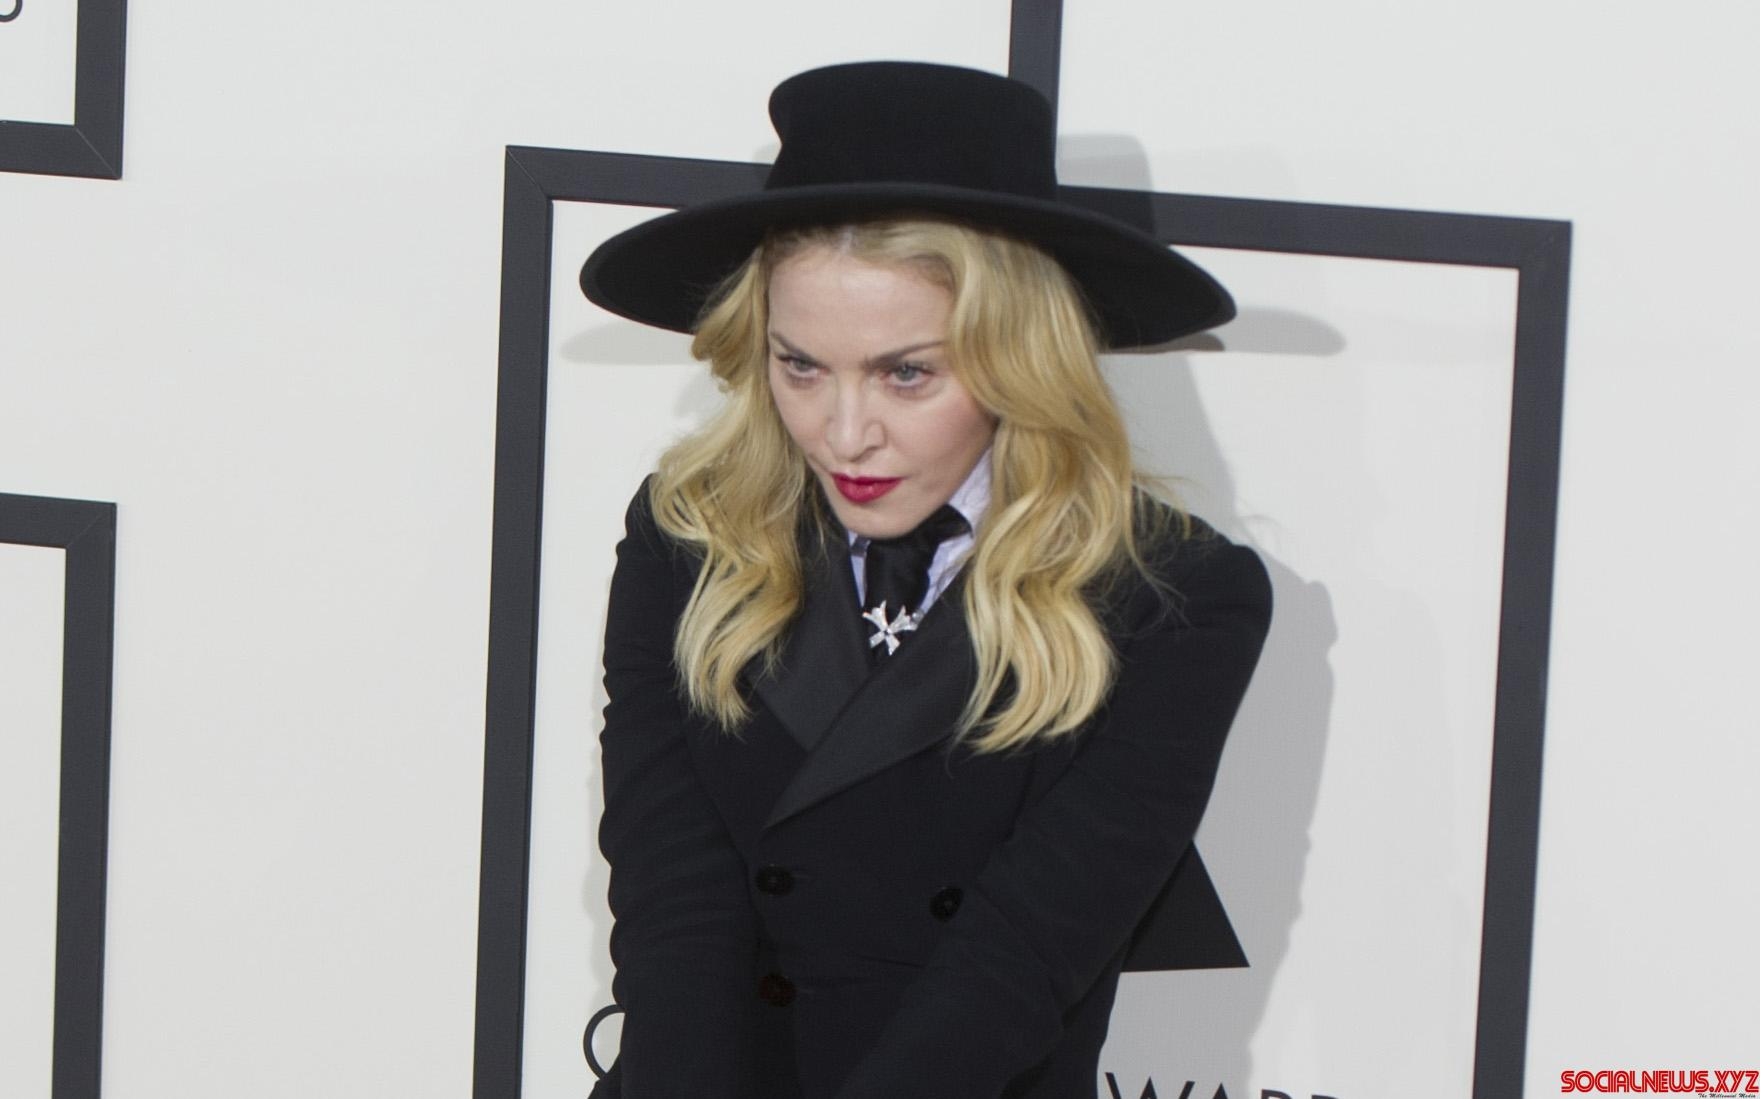 Queen Of Pop Madonna Shares The Reason For Cancelling The UK Show